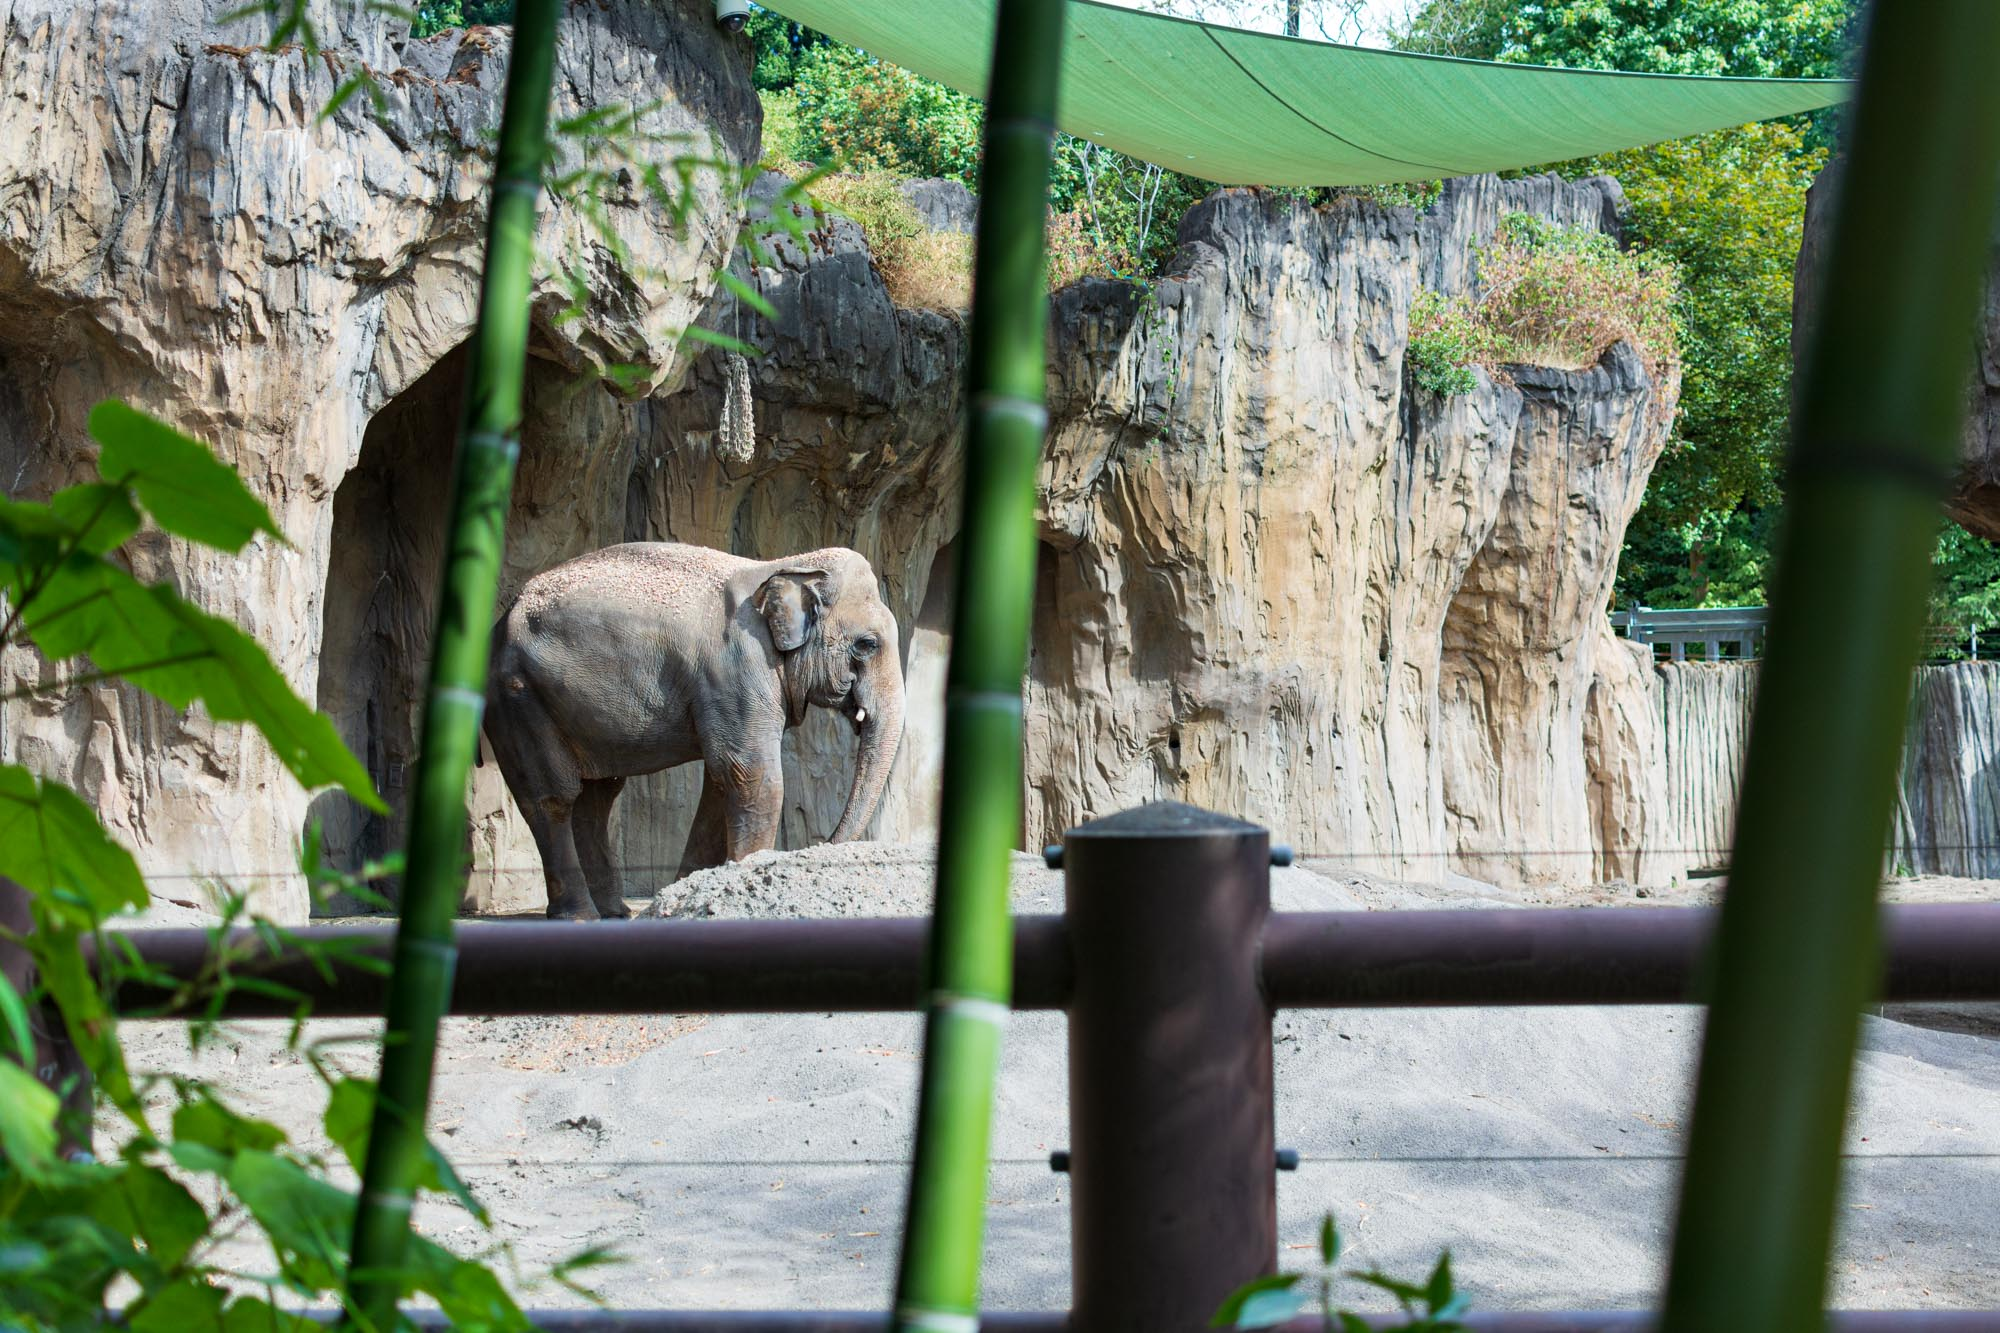 an elephant at the zoo